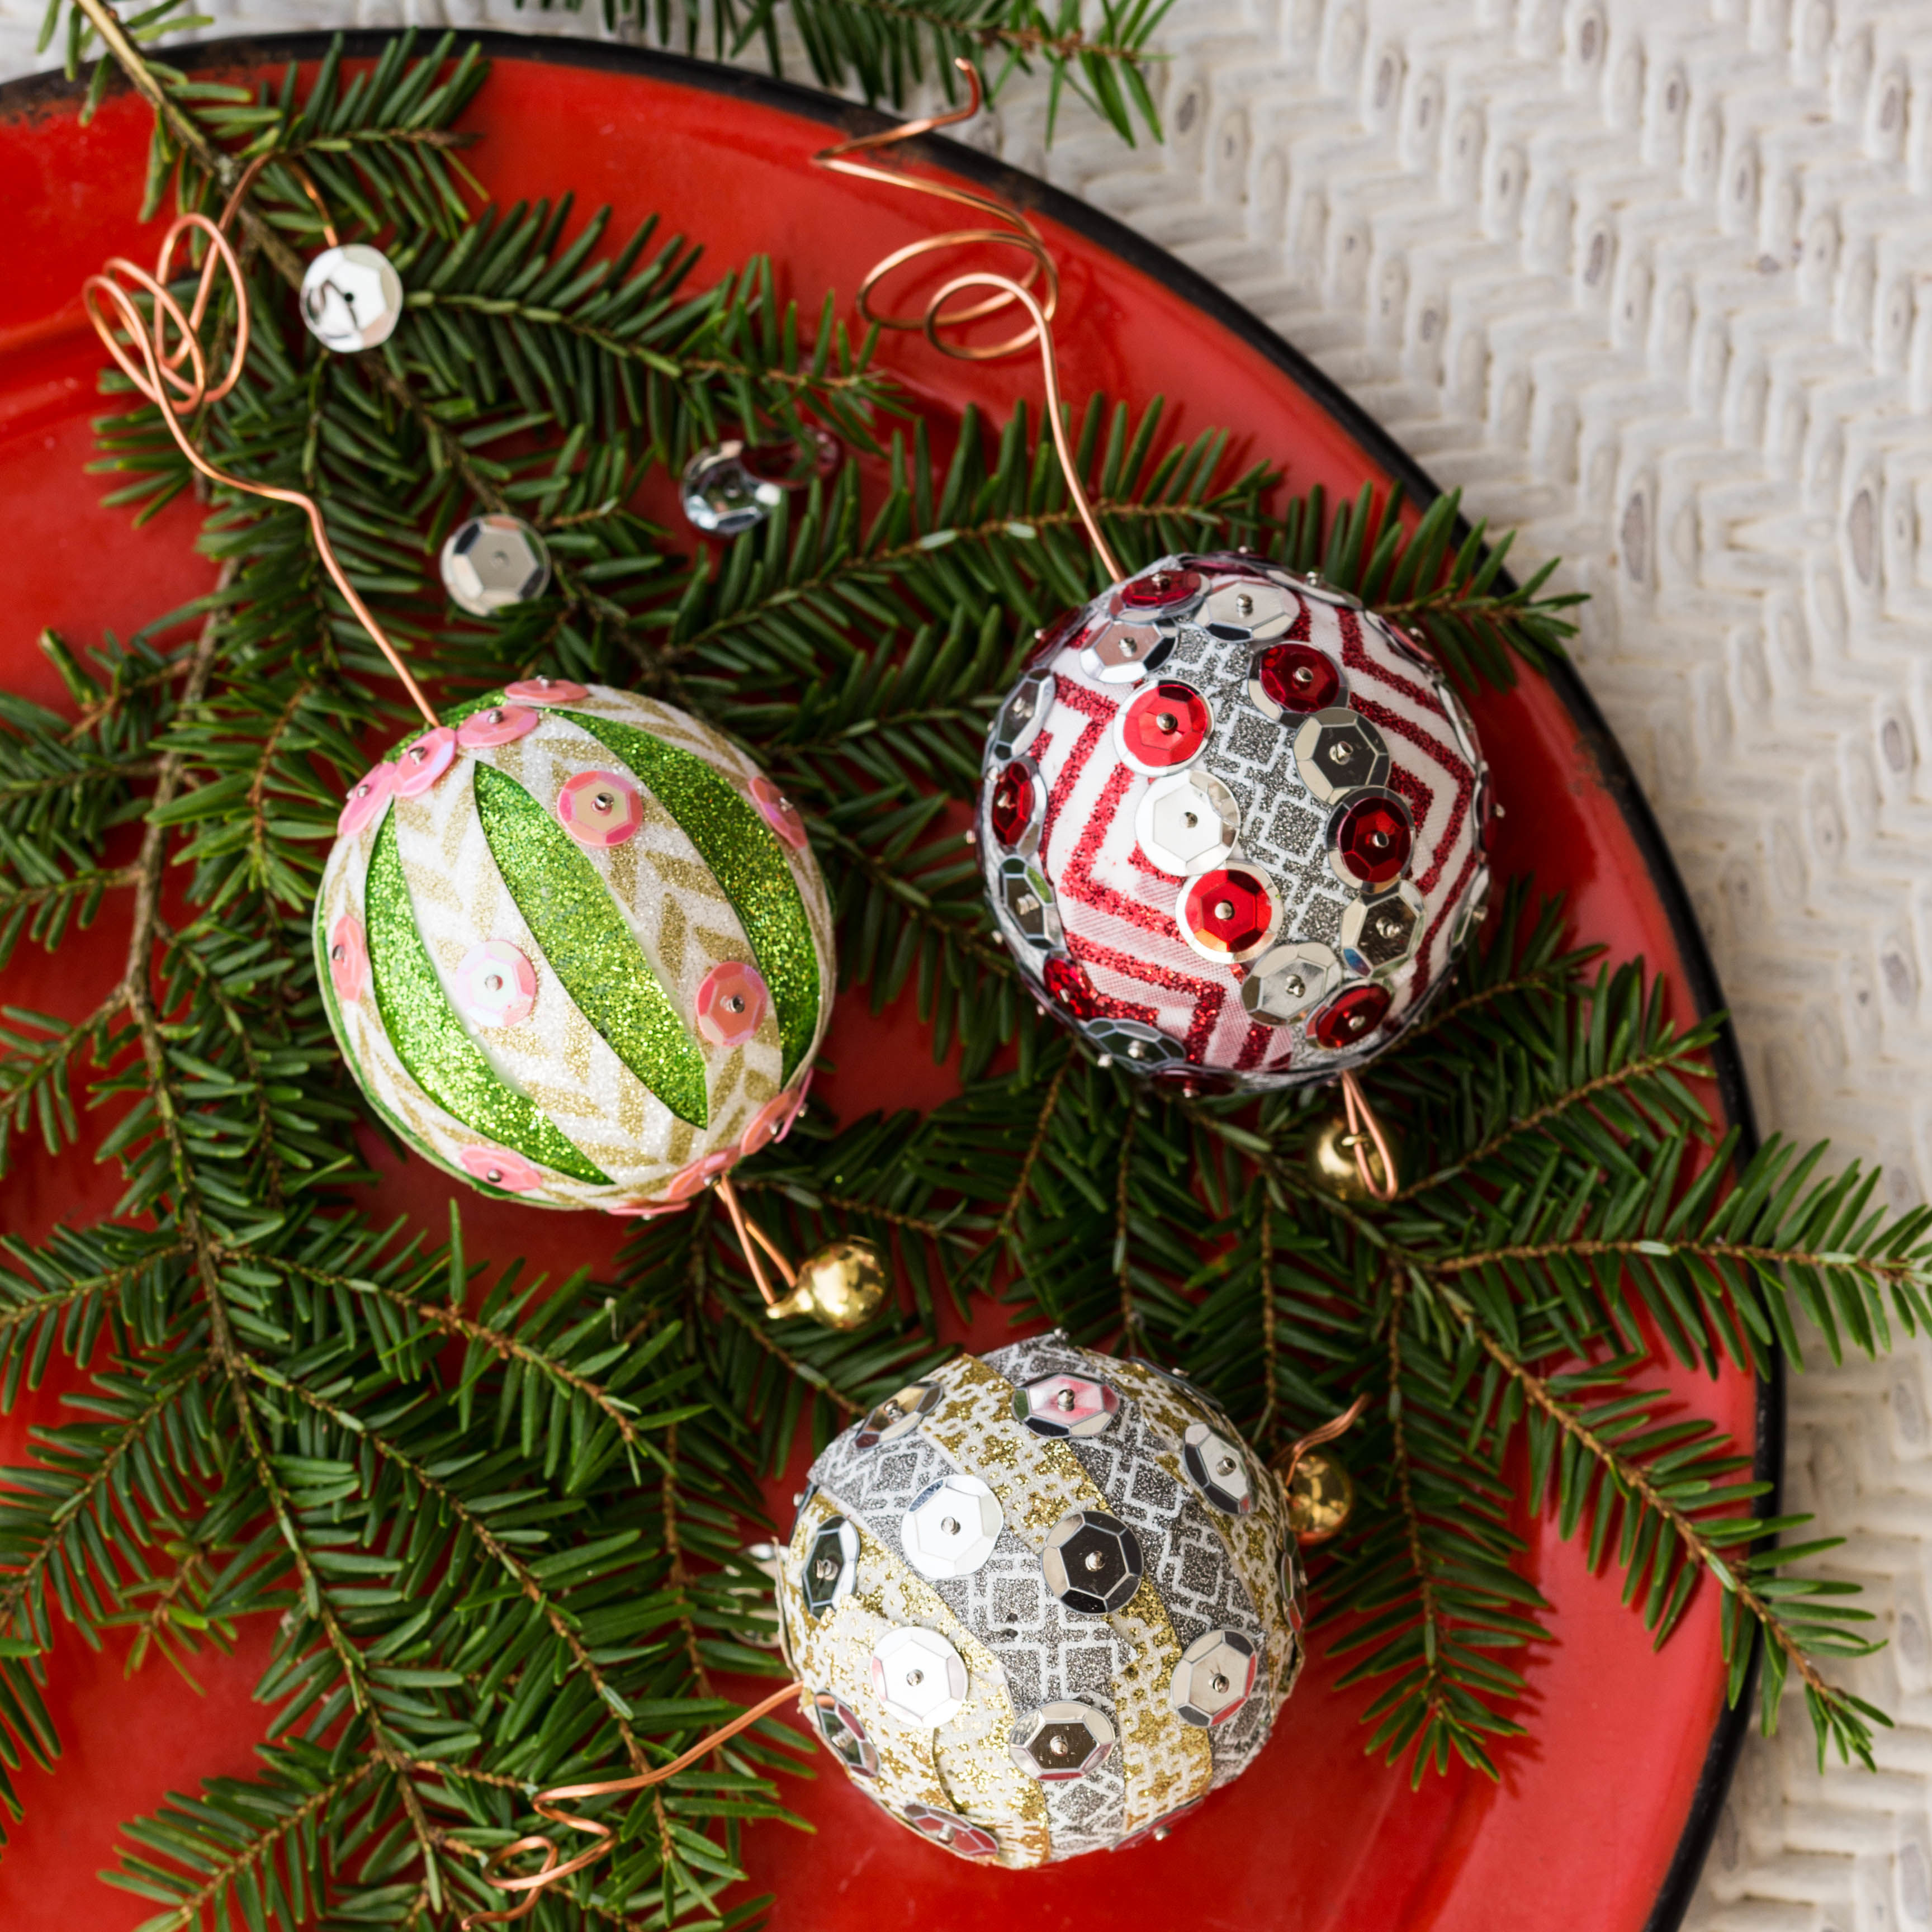 WATCH: 7 DIY Christmas Ornaments to Make From Stuff You Already Have in the House